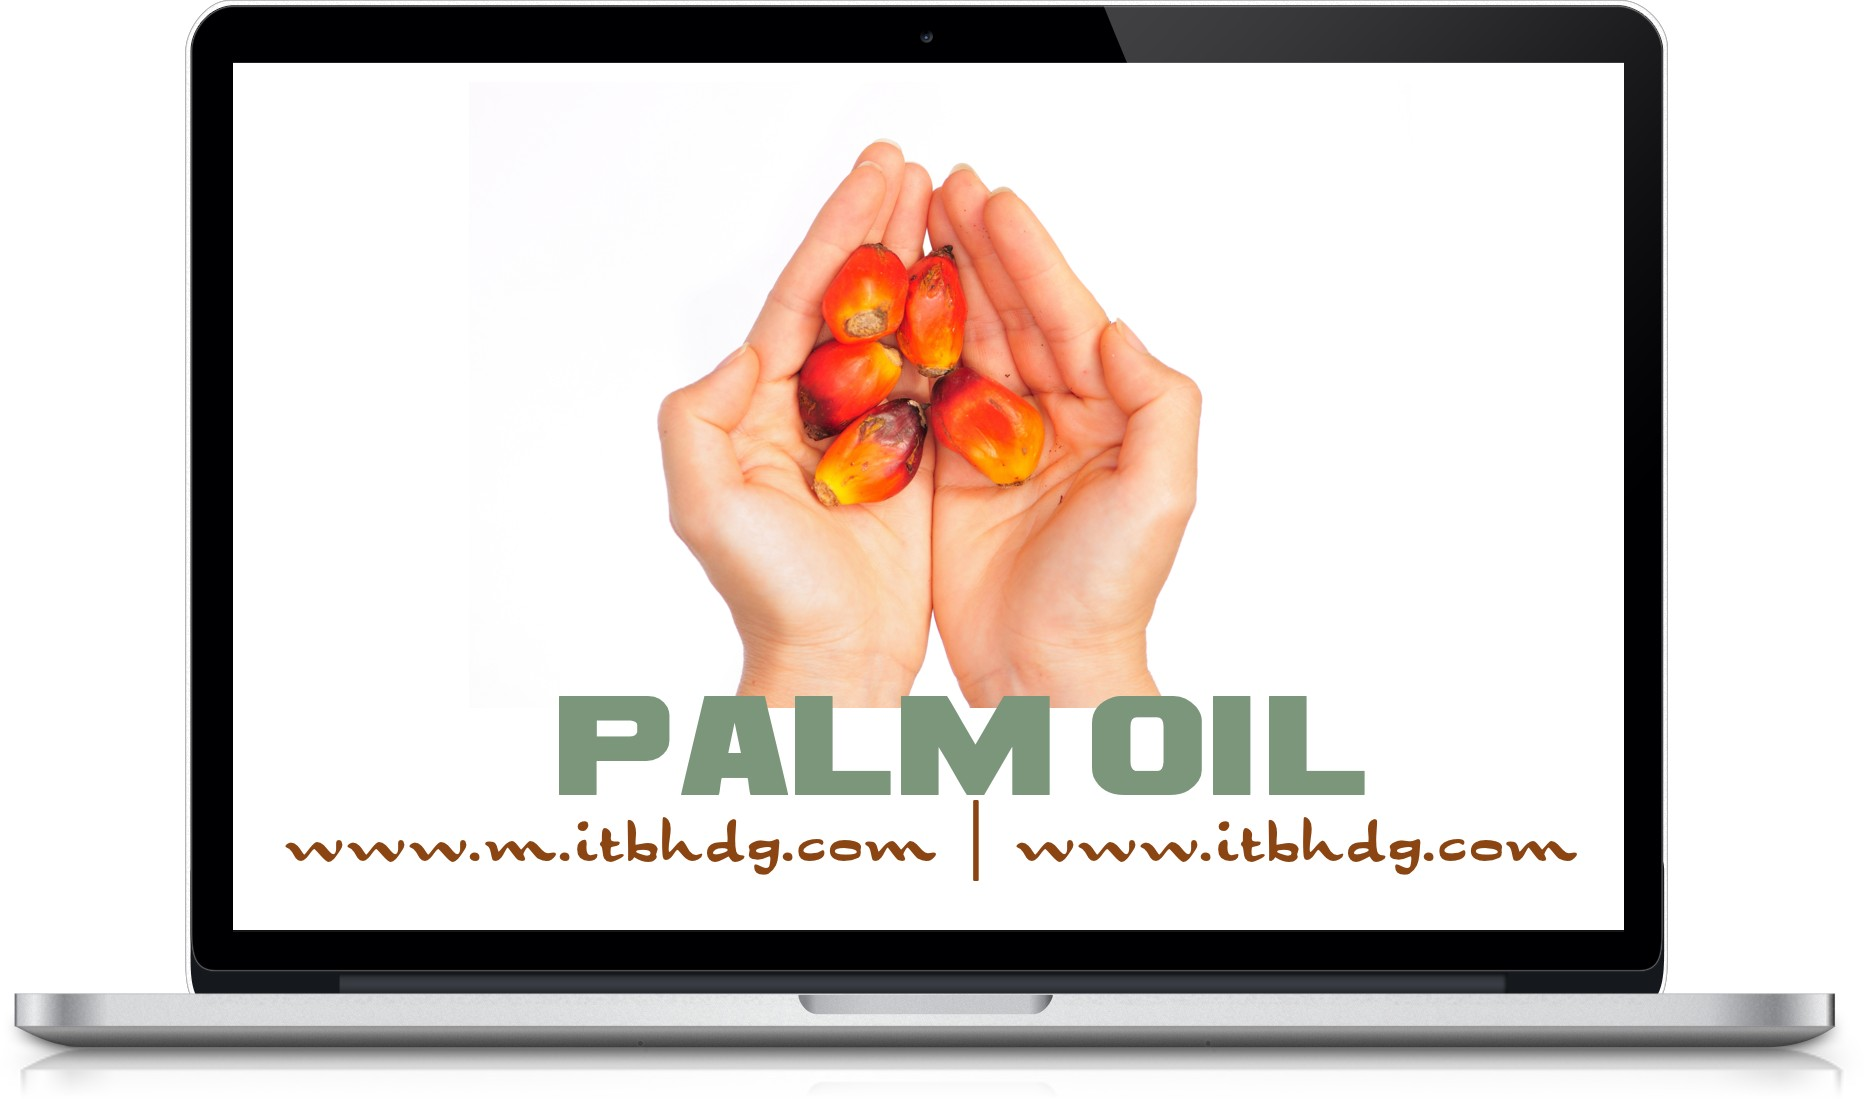 RBD Palm Oil | RBD Palm Olein | RBD Palm Kernel Oil | Crude Palm Oil | Best CIF prices | www.m.itbhdg.com